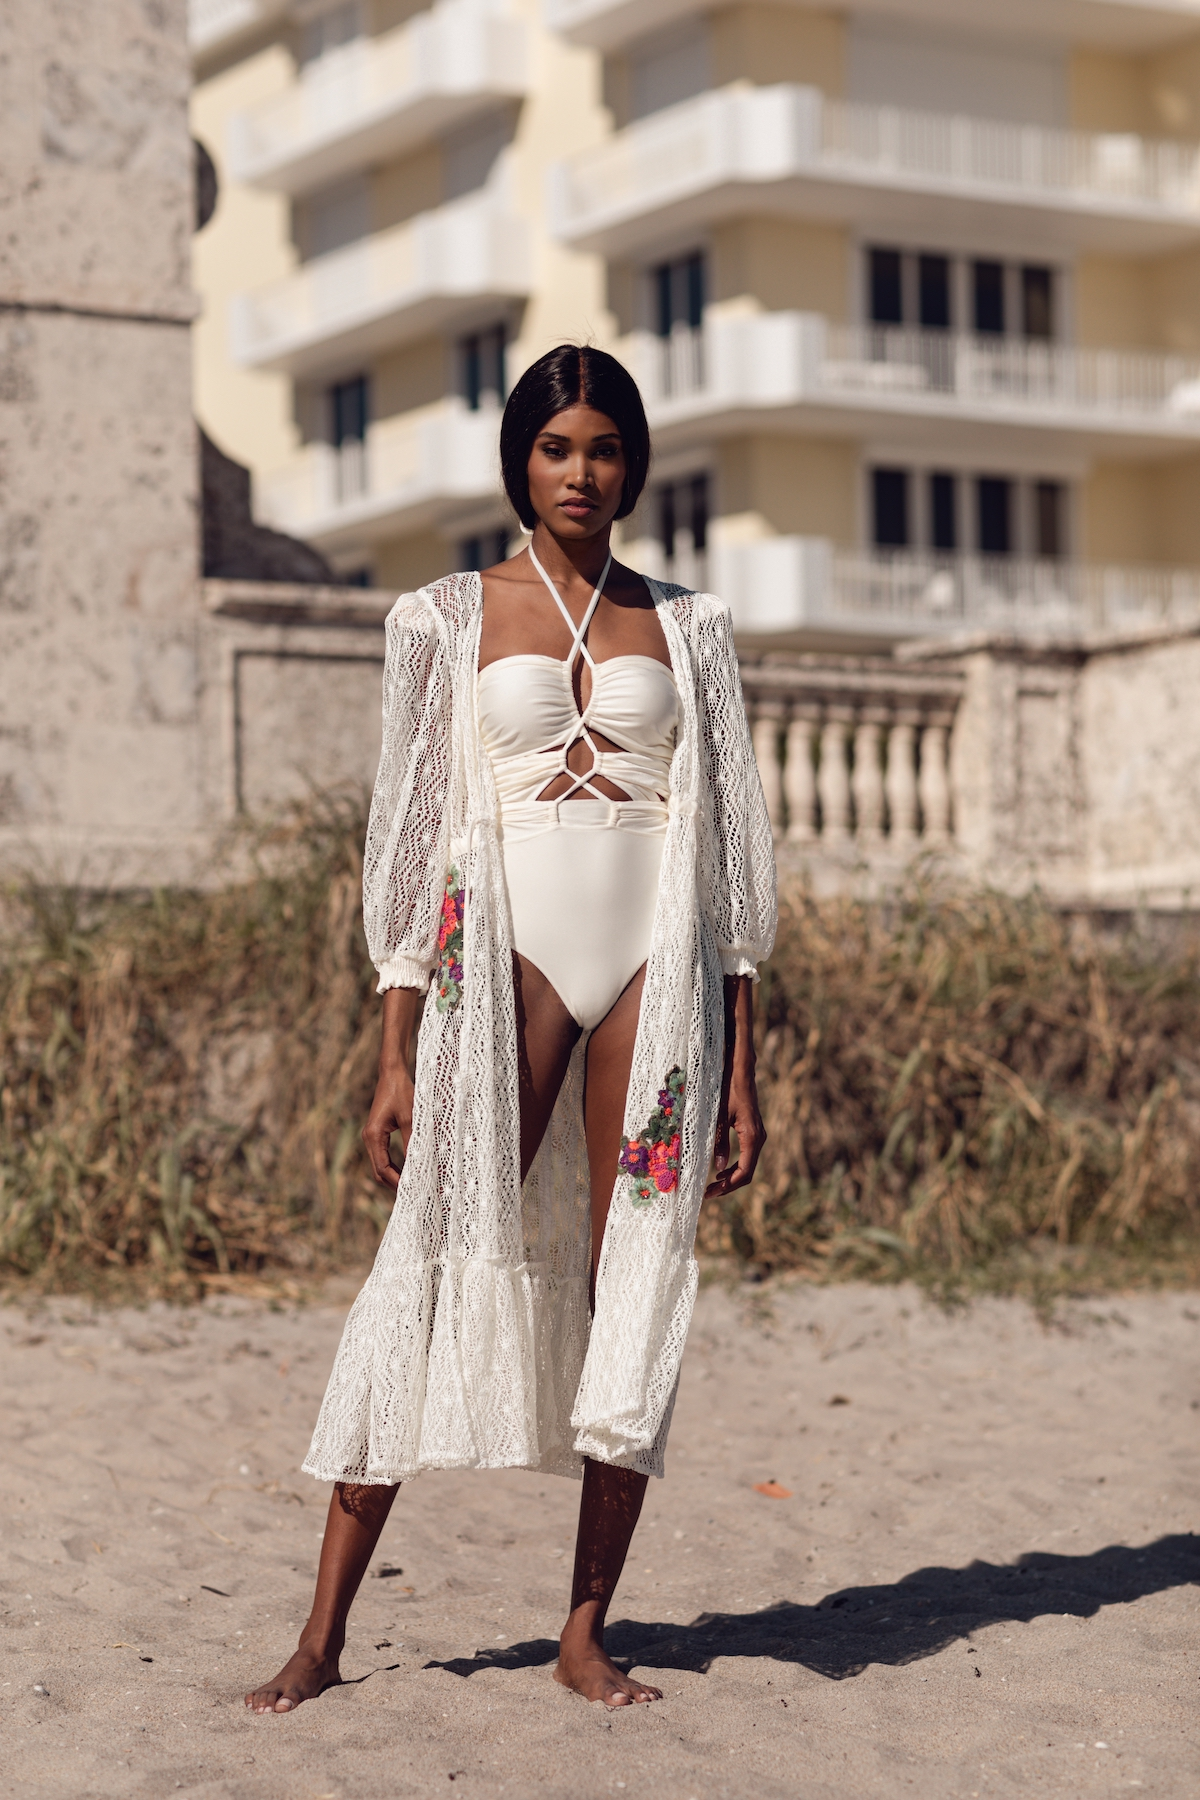 Bridal model poses in white swimsuit and cover up